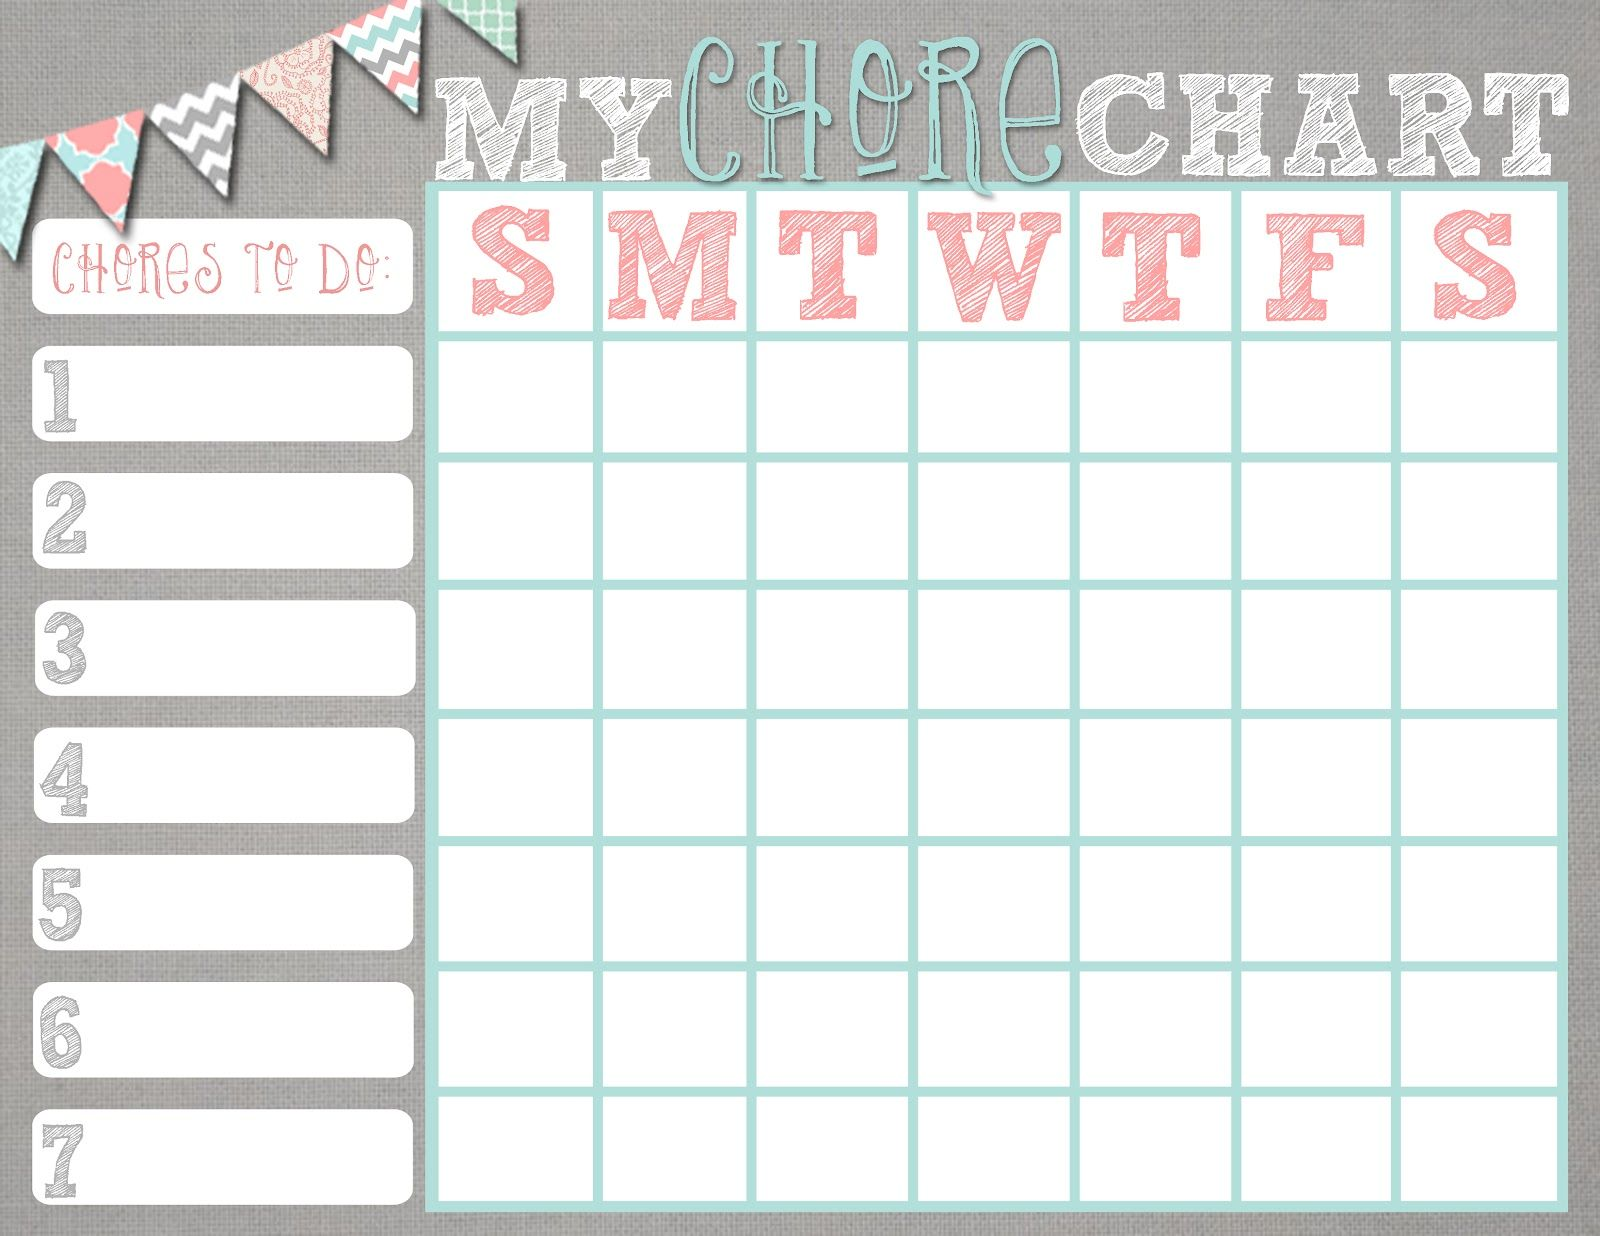 free chore chart printables boy and girl versions thatll look super cute on